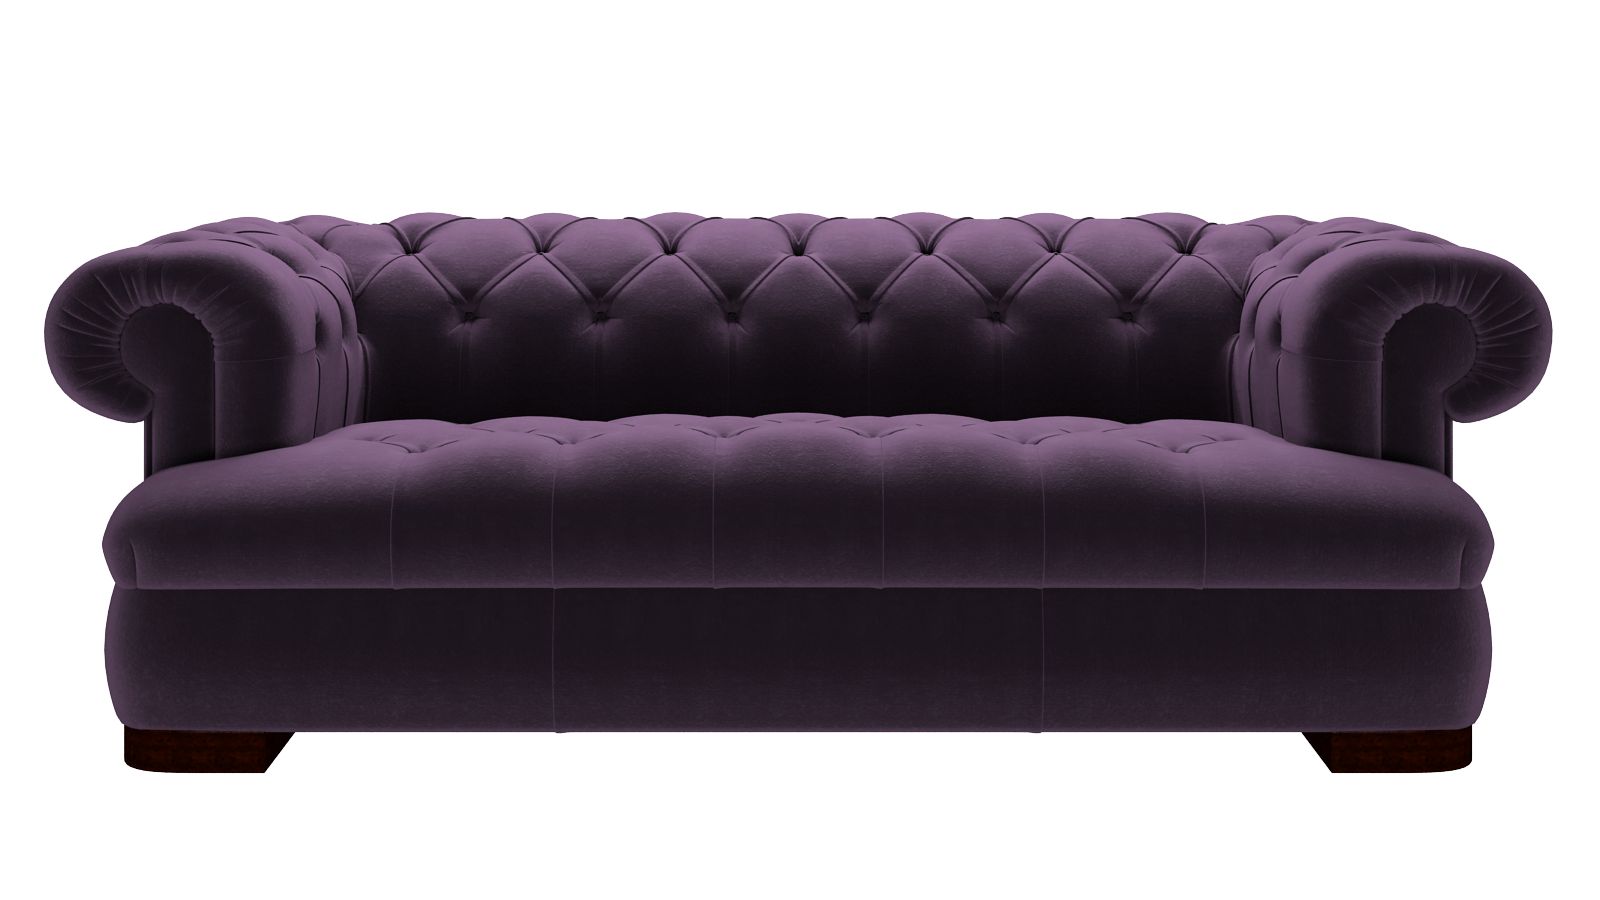 Alongside Leather, Velvet Is One Of The Best Upholstery Choices If You Are  Trying To Capture A Luxurious Look For Your Sofa. There Are A Few Materials  That ...